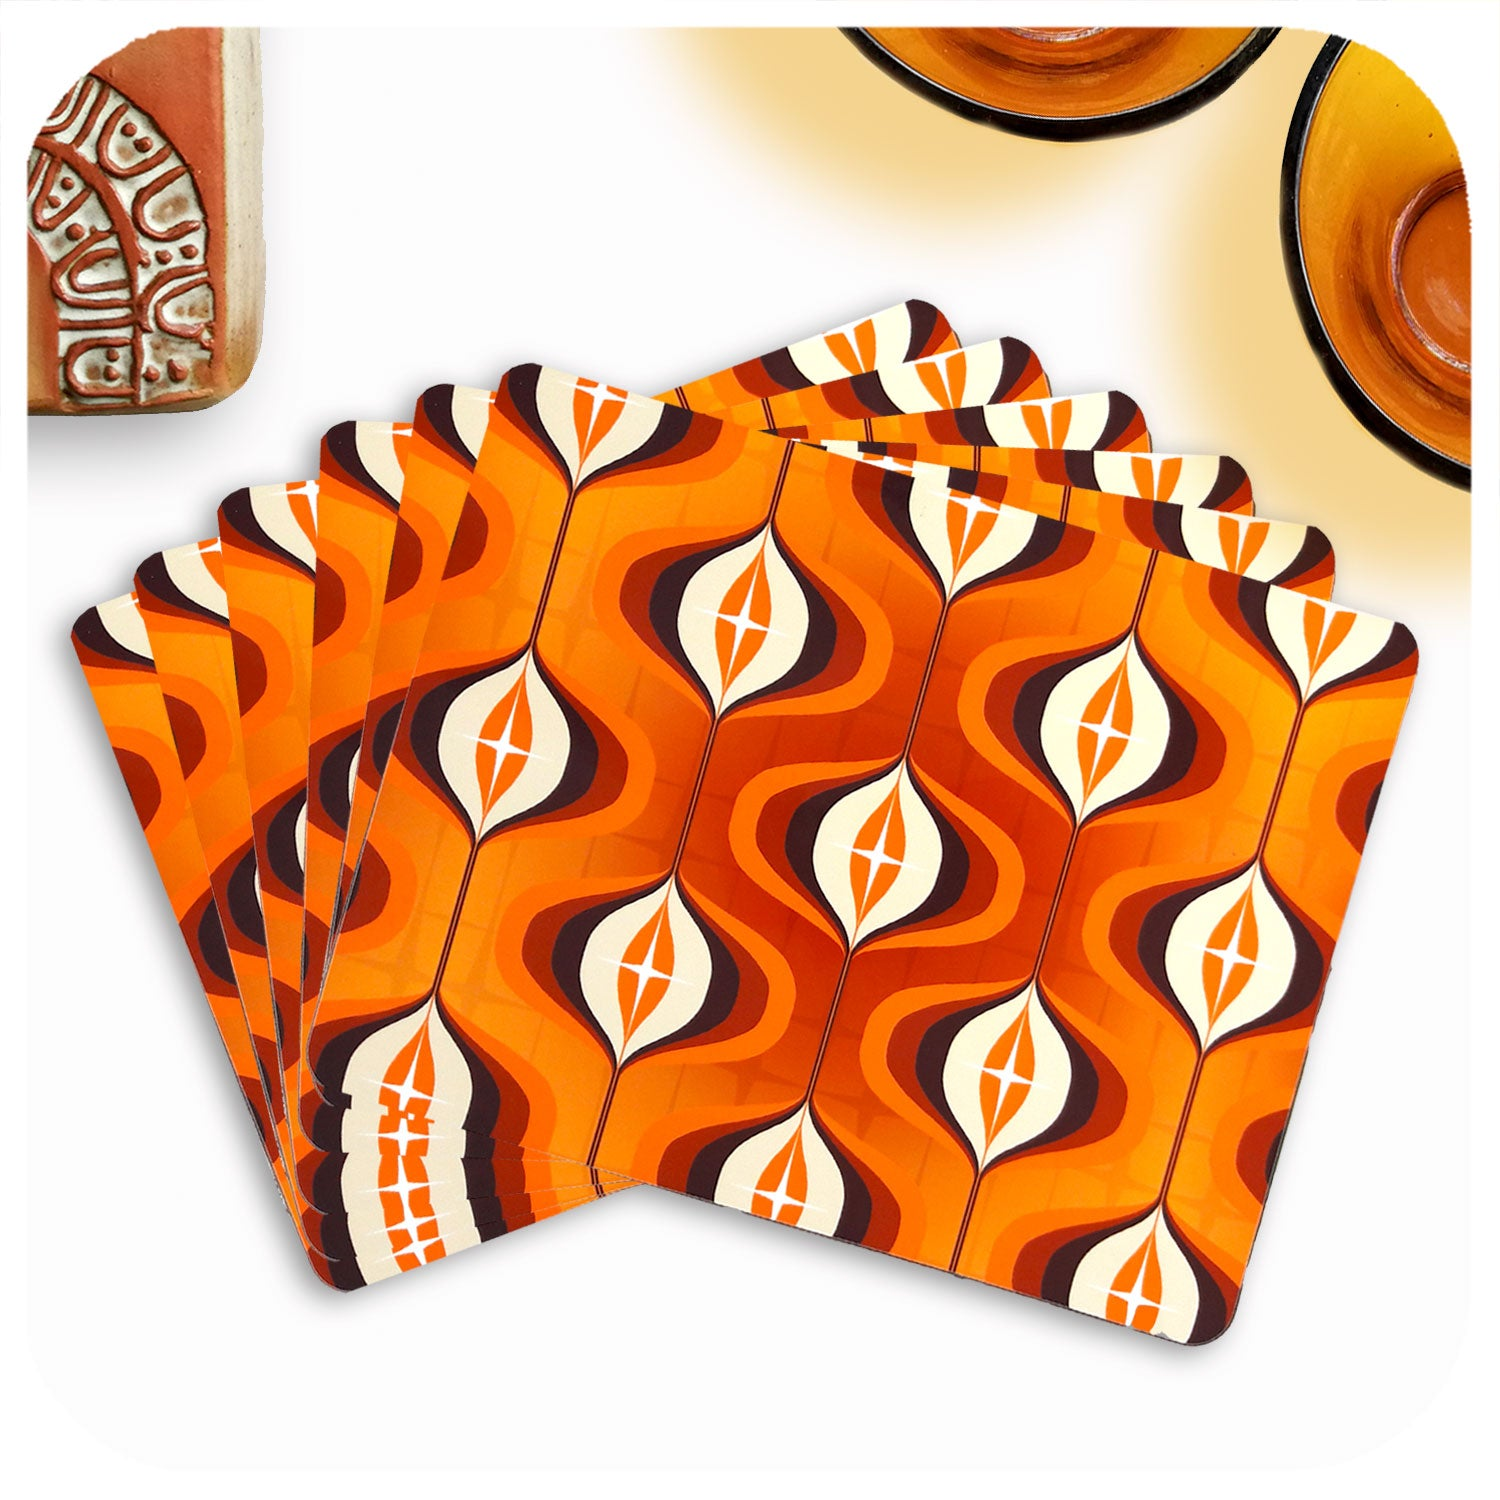 Orange Op Art Placemats, set of 6 in a fan | The Inkabilly Emporium